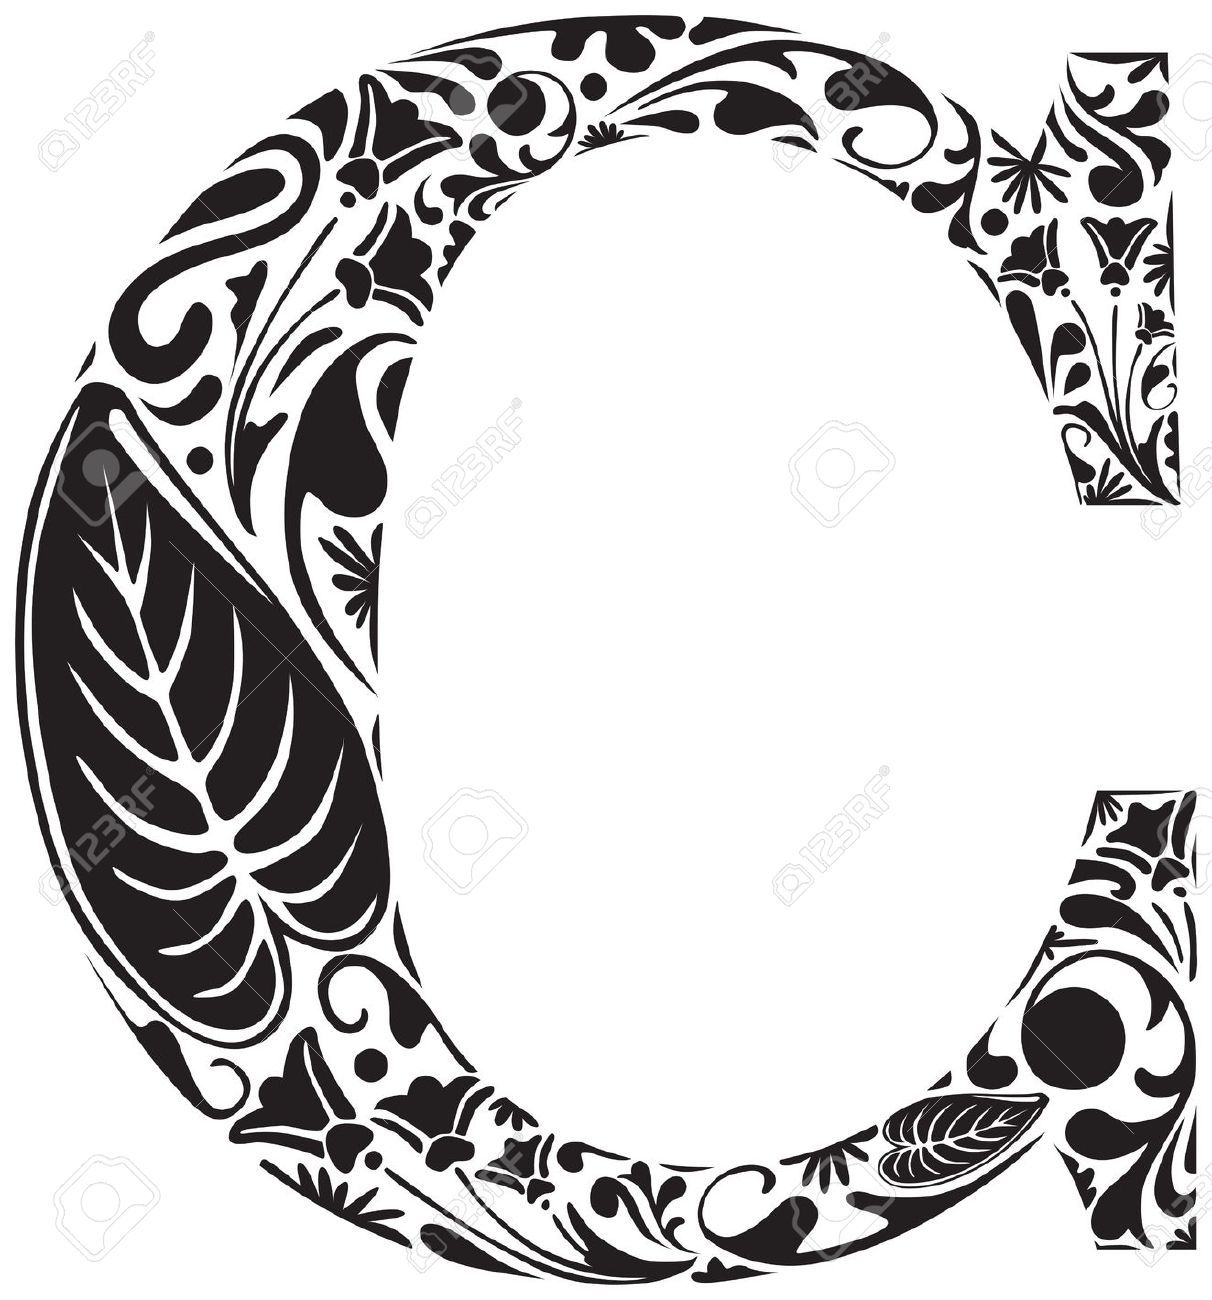 Floral Initial Capital Letter C Stock Vector